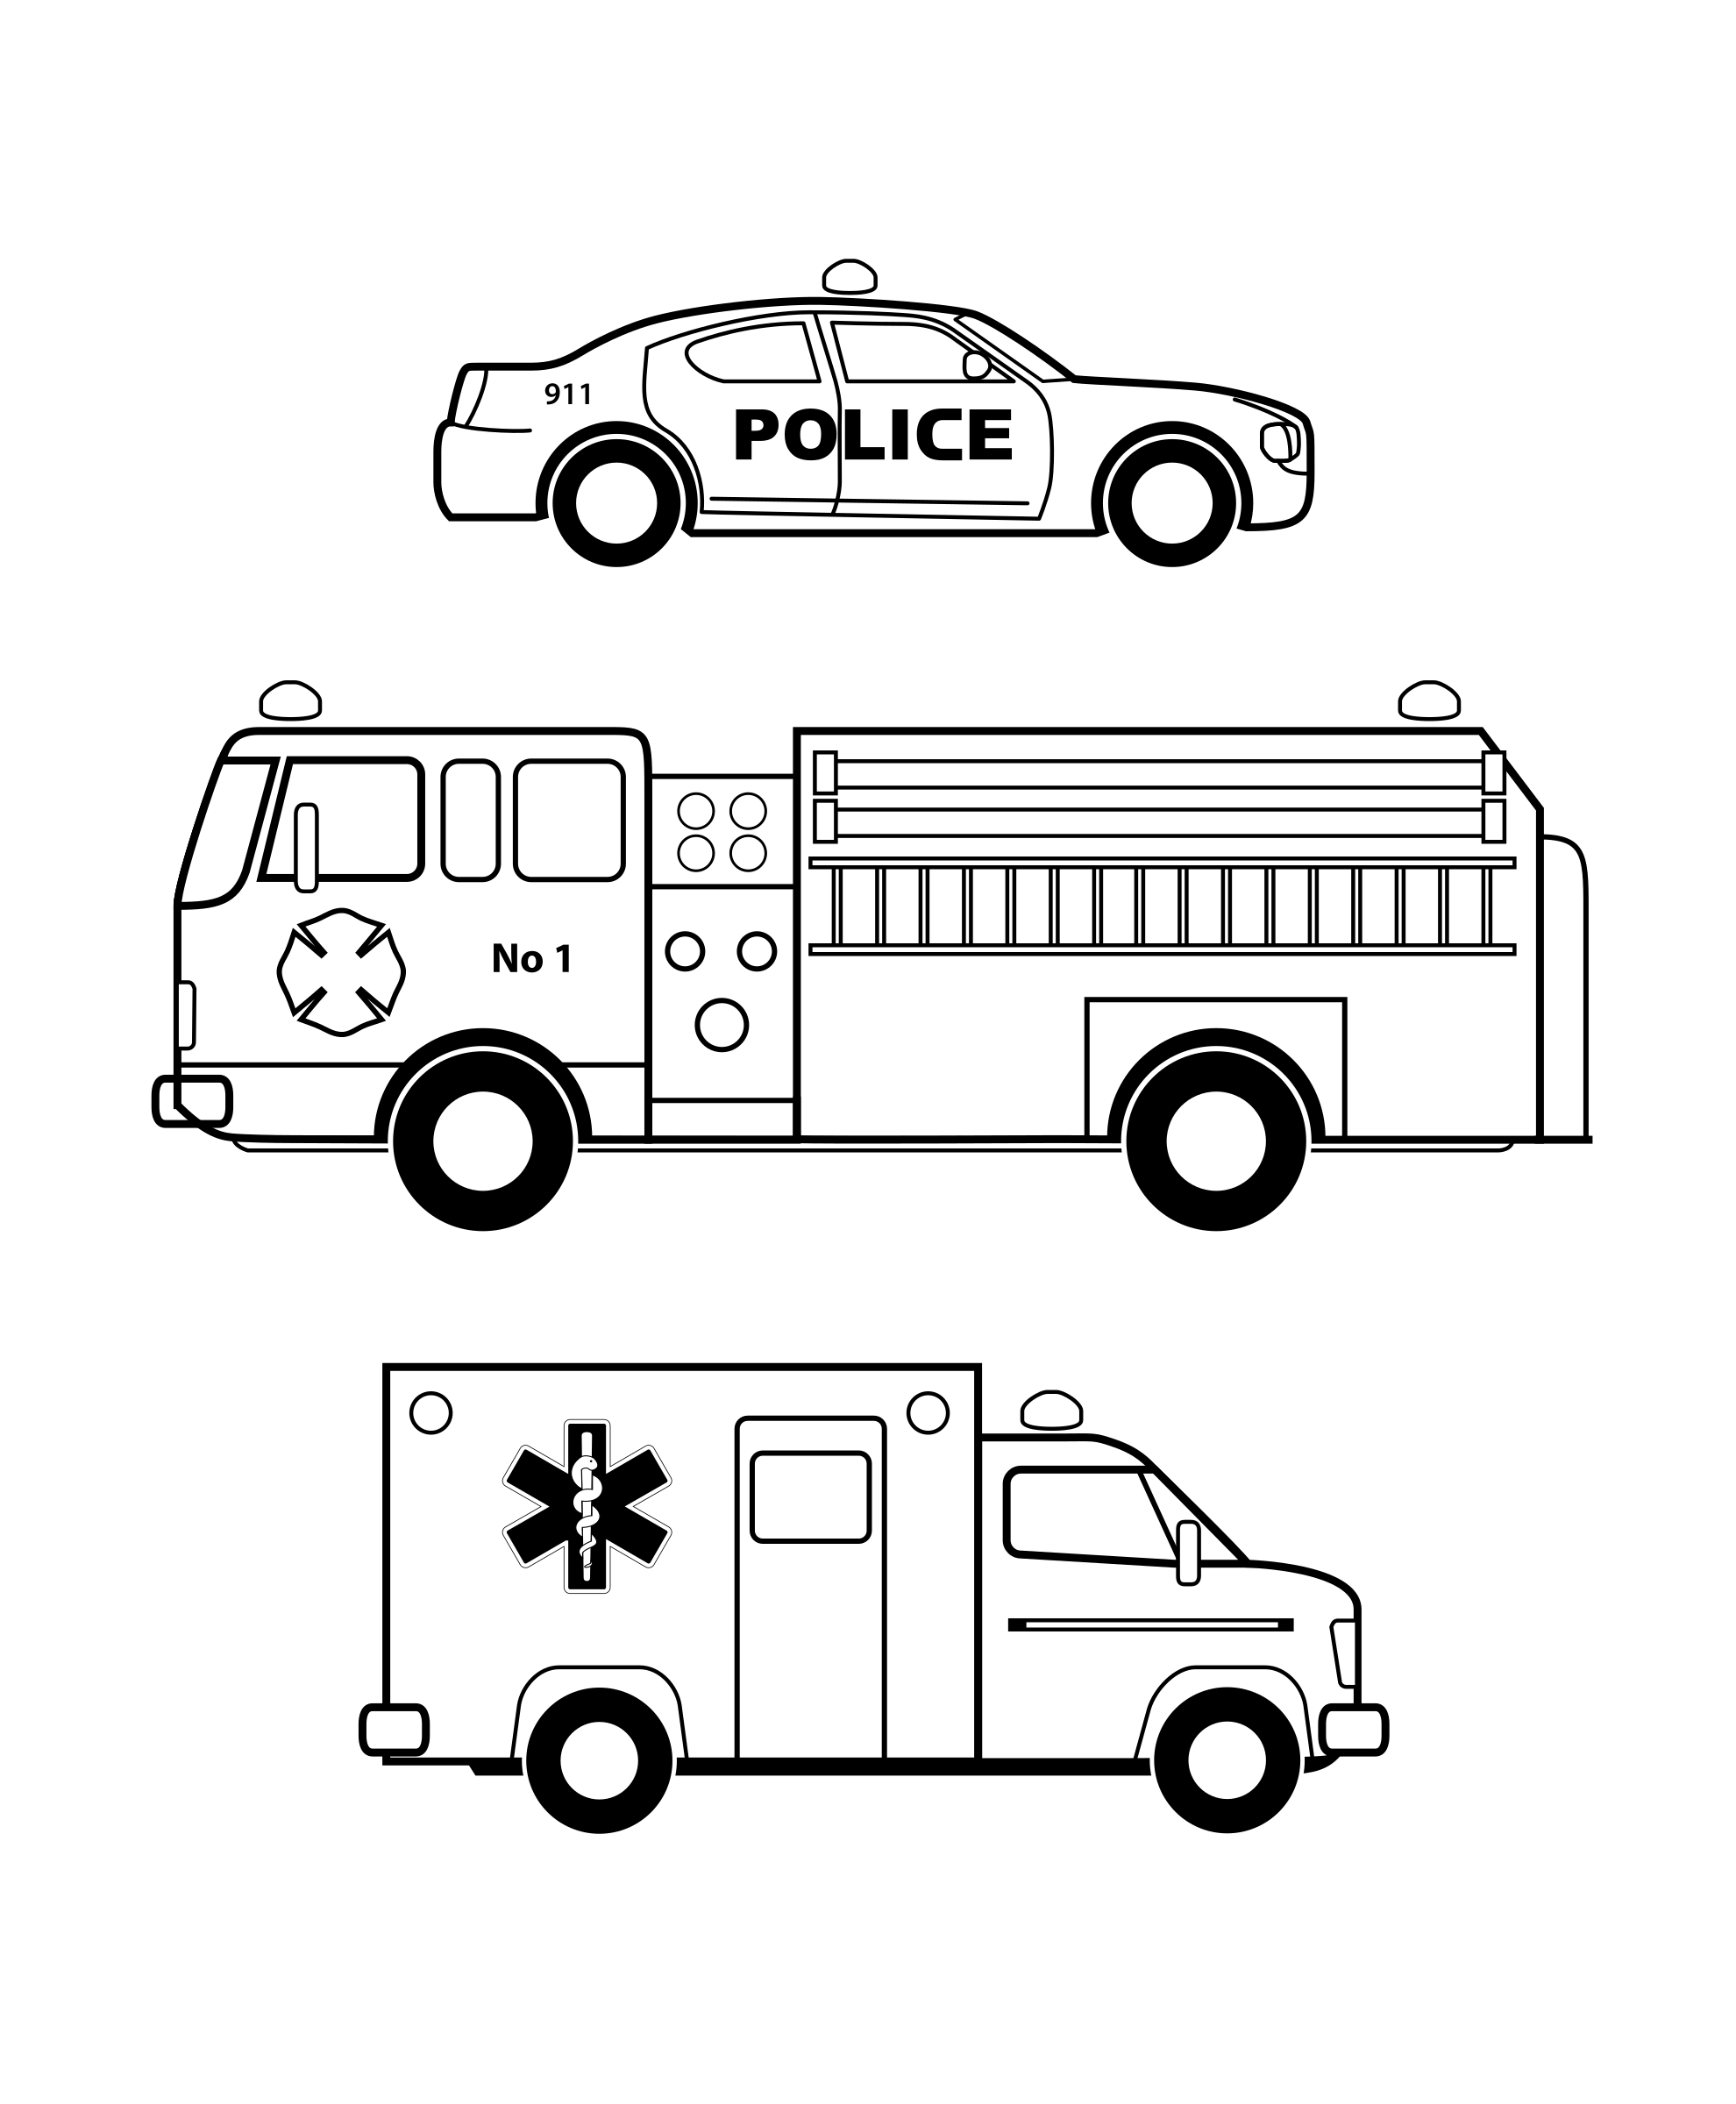 911 clipart emergency. Vehicles black and white